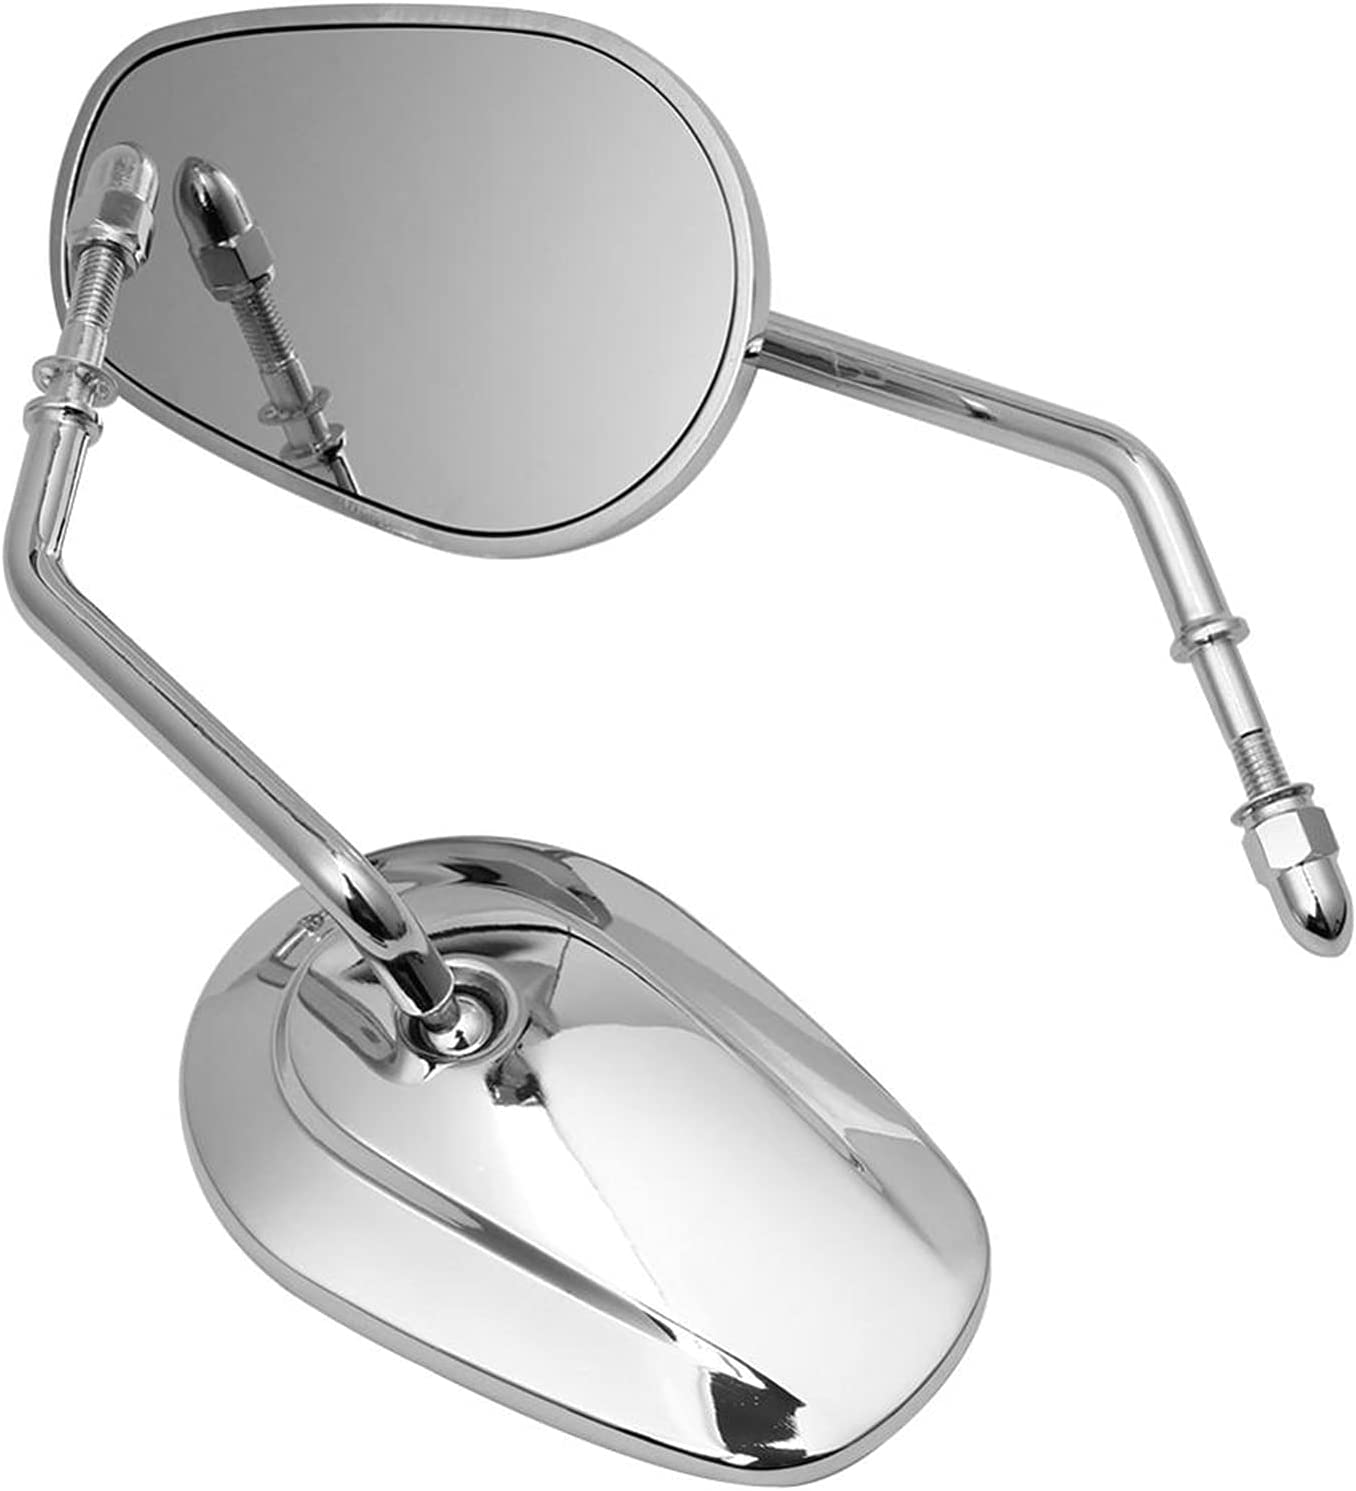 Motorcycle Rear Super popular specialty Mail order cheap store Side Mirror for Touring King Road H-Arley Sports